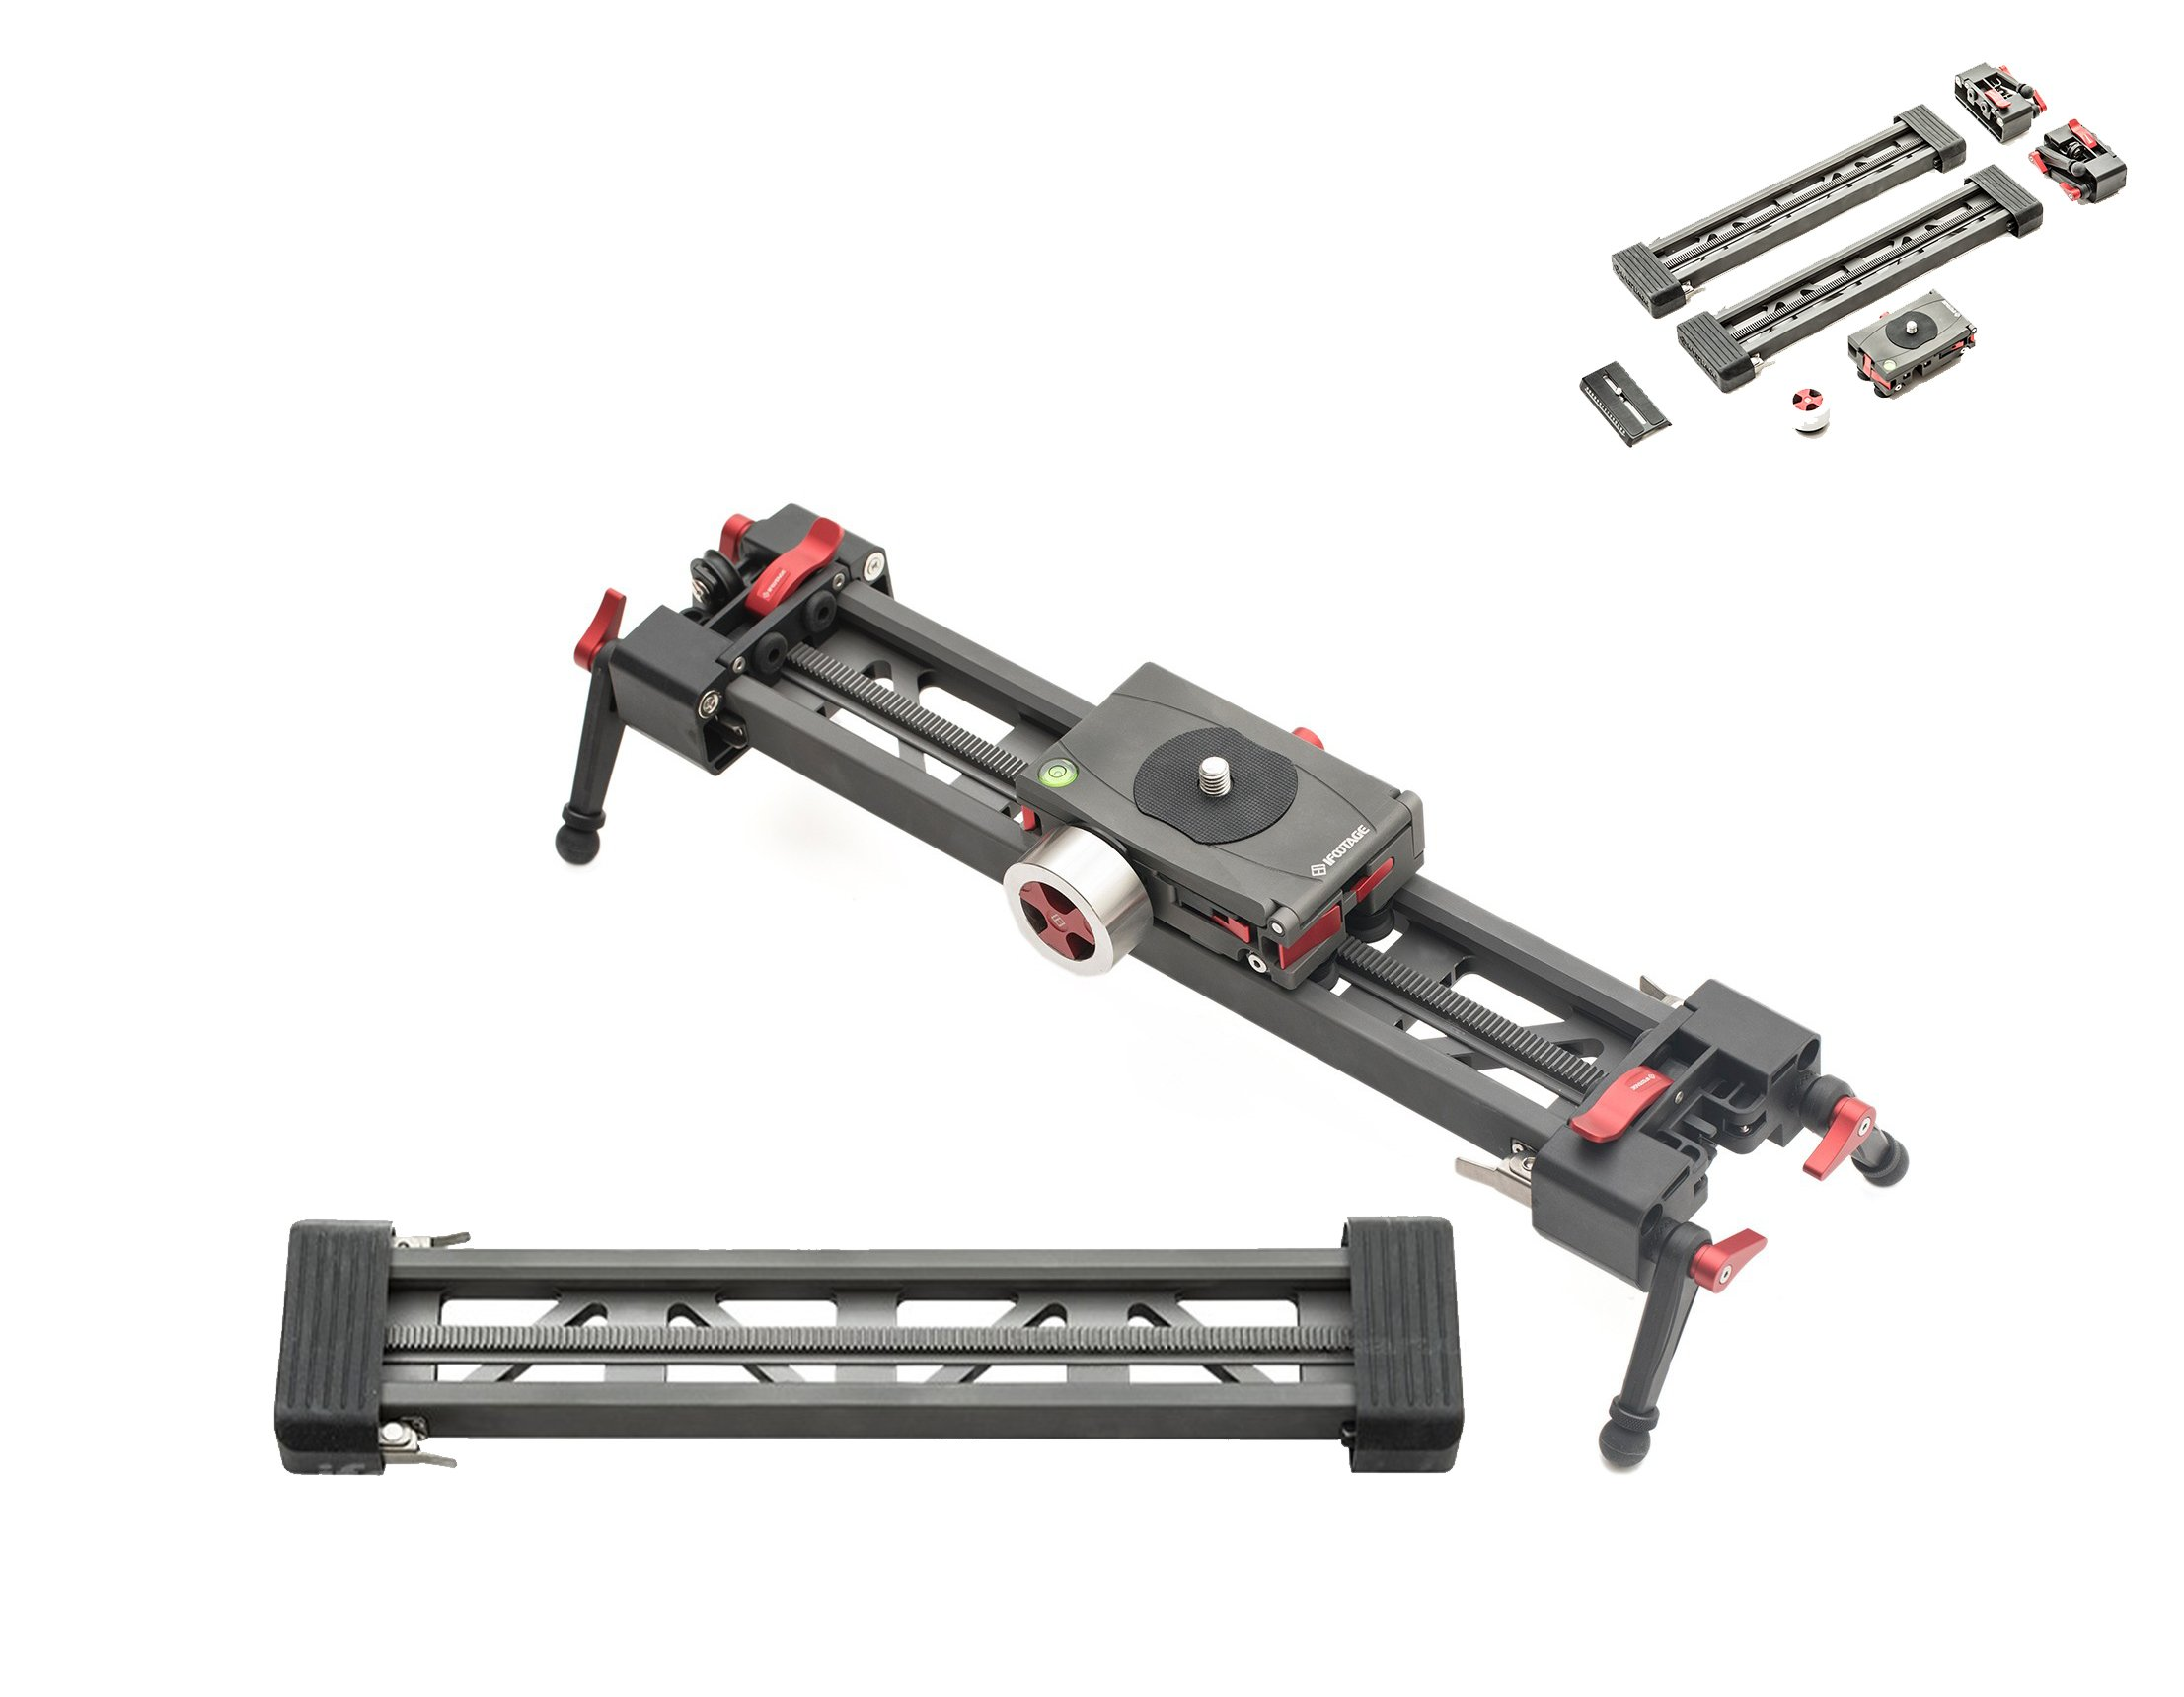 IFootage Mini Shark Slider 33''. 4.2 Lbs Weight Capacity. For DSLR And Mirrorless Video Cameras